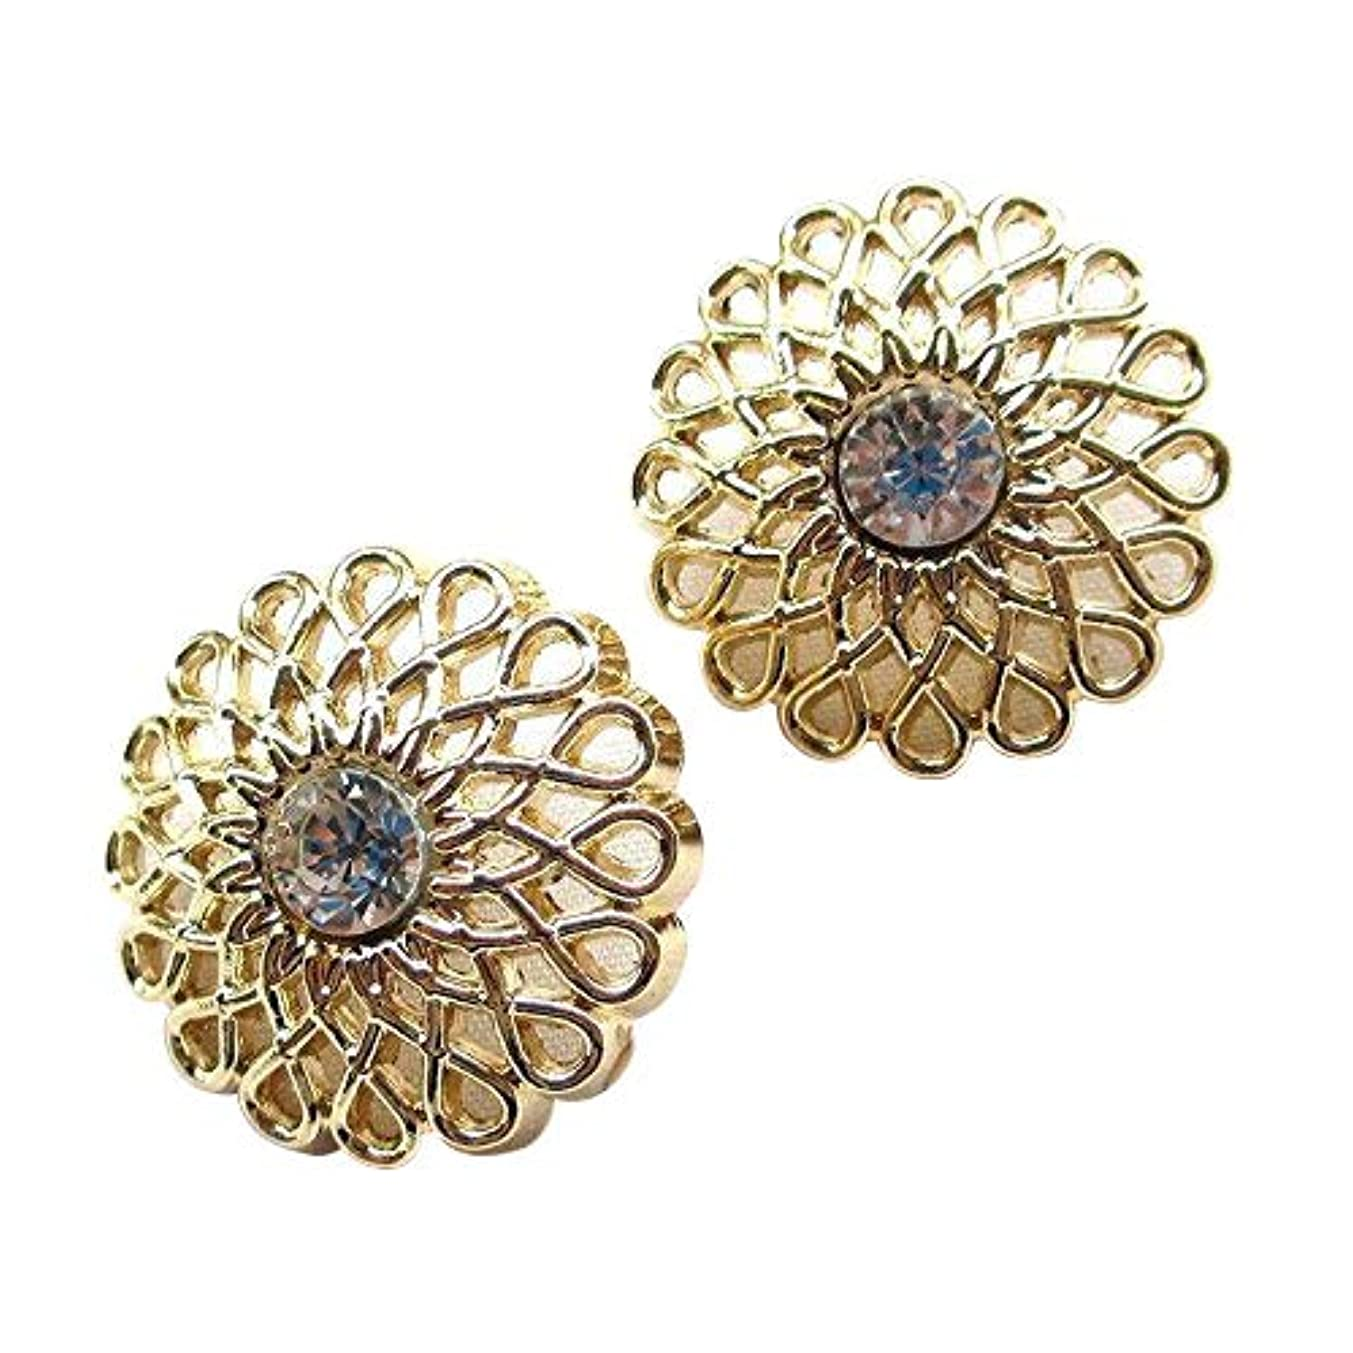 Chenkou Craft New 20pcs Gold Alloy Rhinestone Crytal Hollow Buttons 25mm Sewing Craft Mix Lots ?- (gold4)